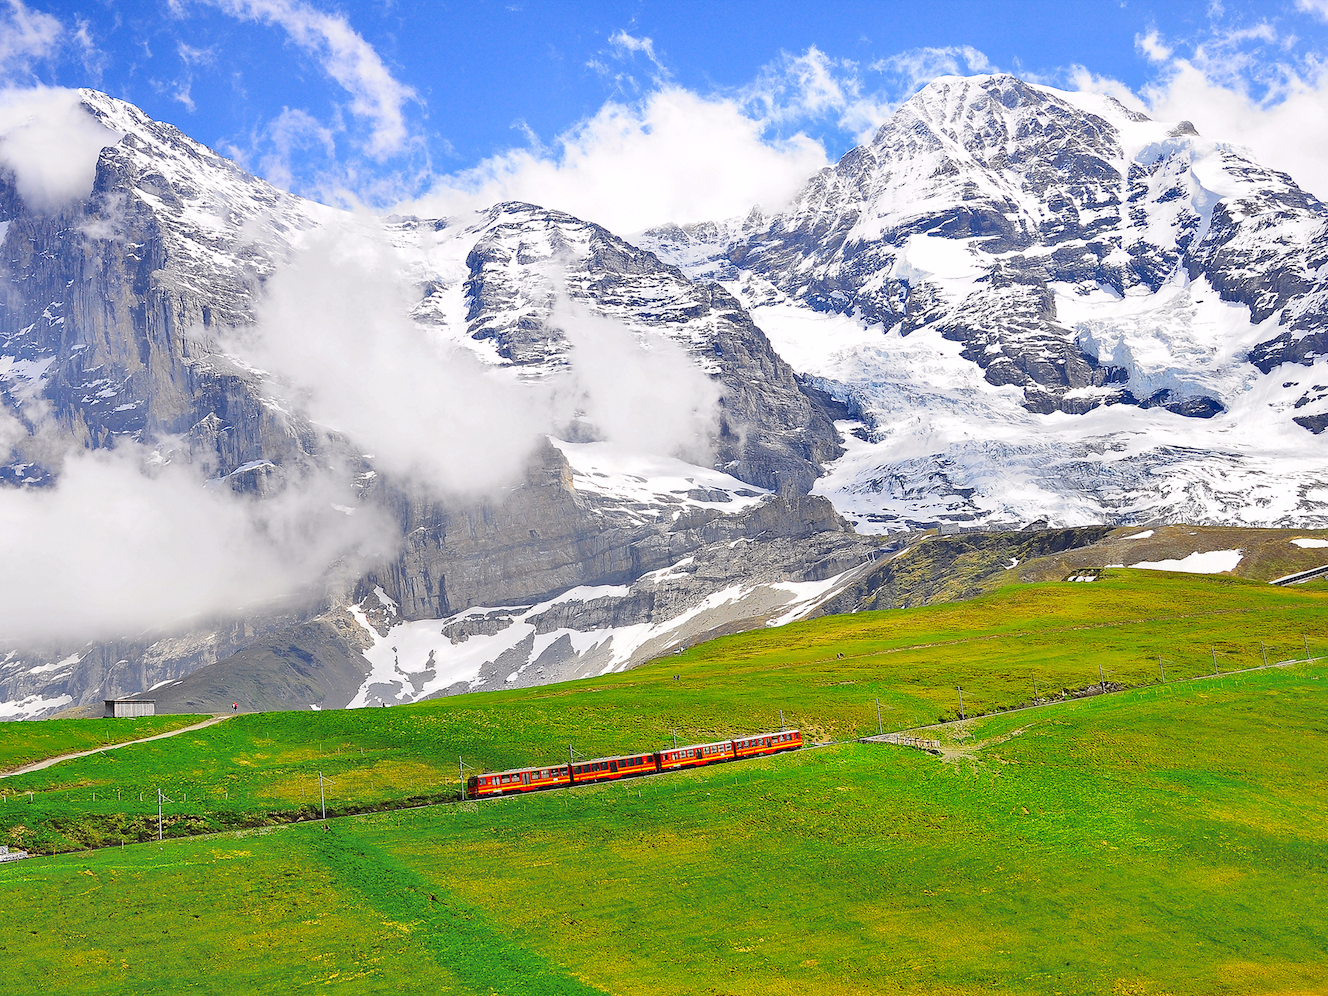 Just a short trip from Lauterbrunnen, you'll find a cog railway that runs up to the Jungfraujoch, a peak that is home to the Aletsch Glacier, as well as Europe's highest-altitude railway station and post office.